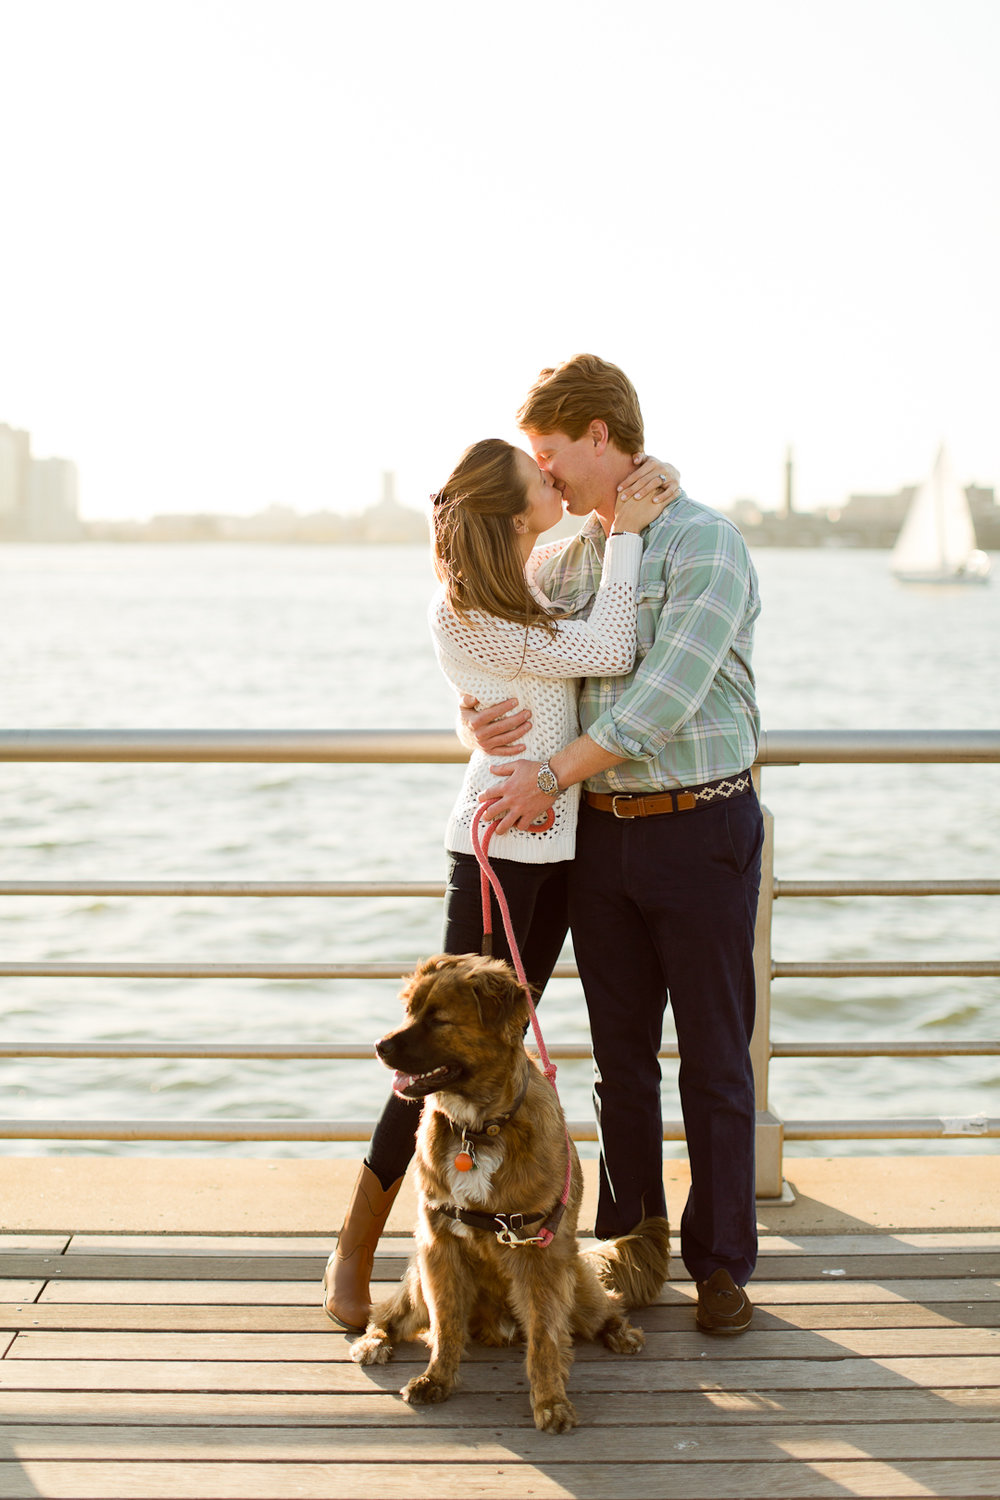 Melissa Kruse Photography - Megan & Tyler West Village Engagement Photos-96.jpg